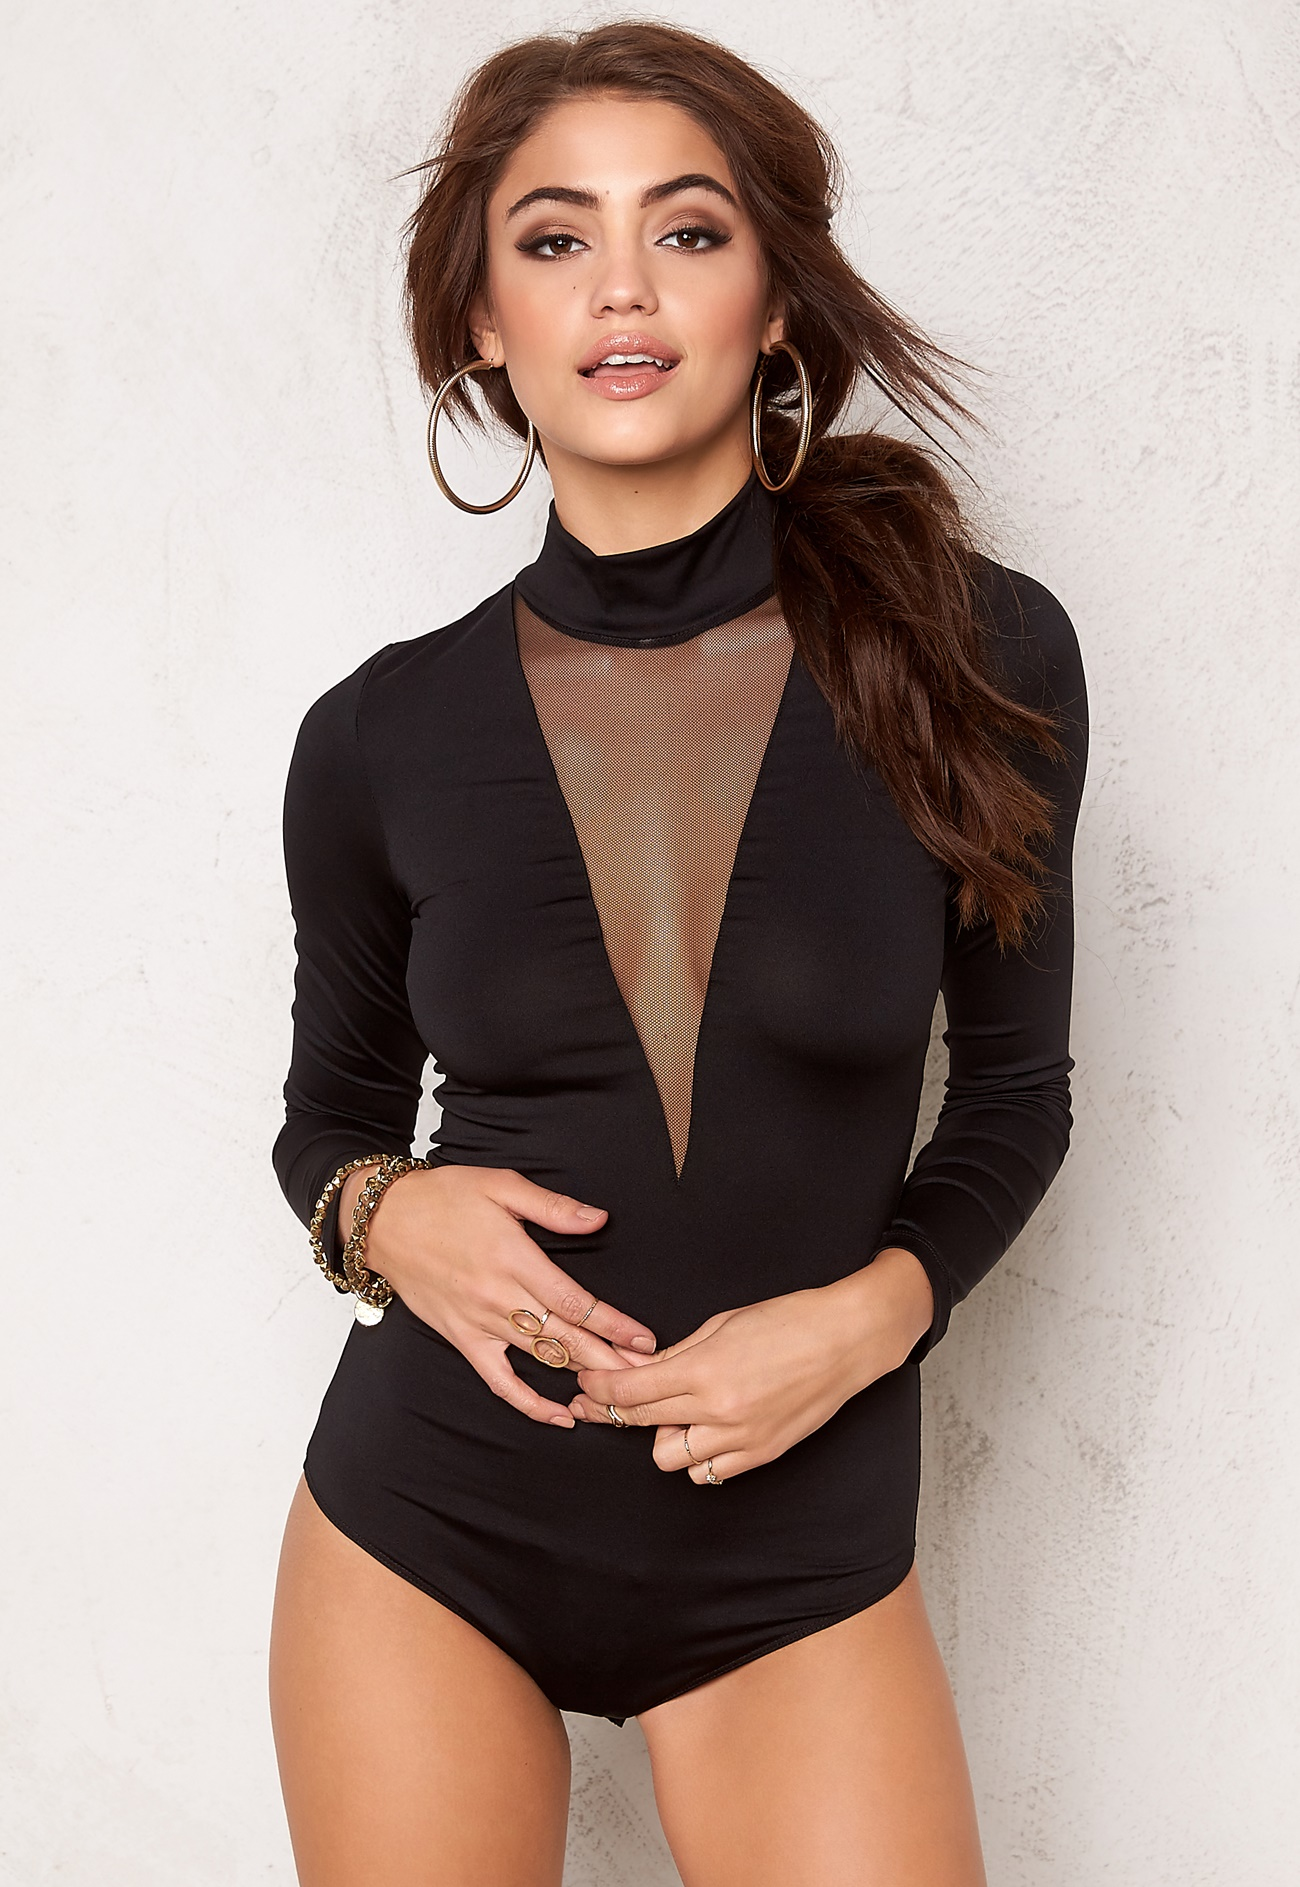 black single women in aiea Shop day and night women's dresses look through all our styles including off shoulder, lace, little black dresses & more express dresses at 98-1005 moanalua rd aiea, hawaii | shop dresses near you.